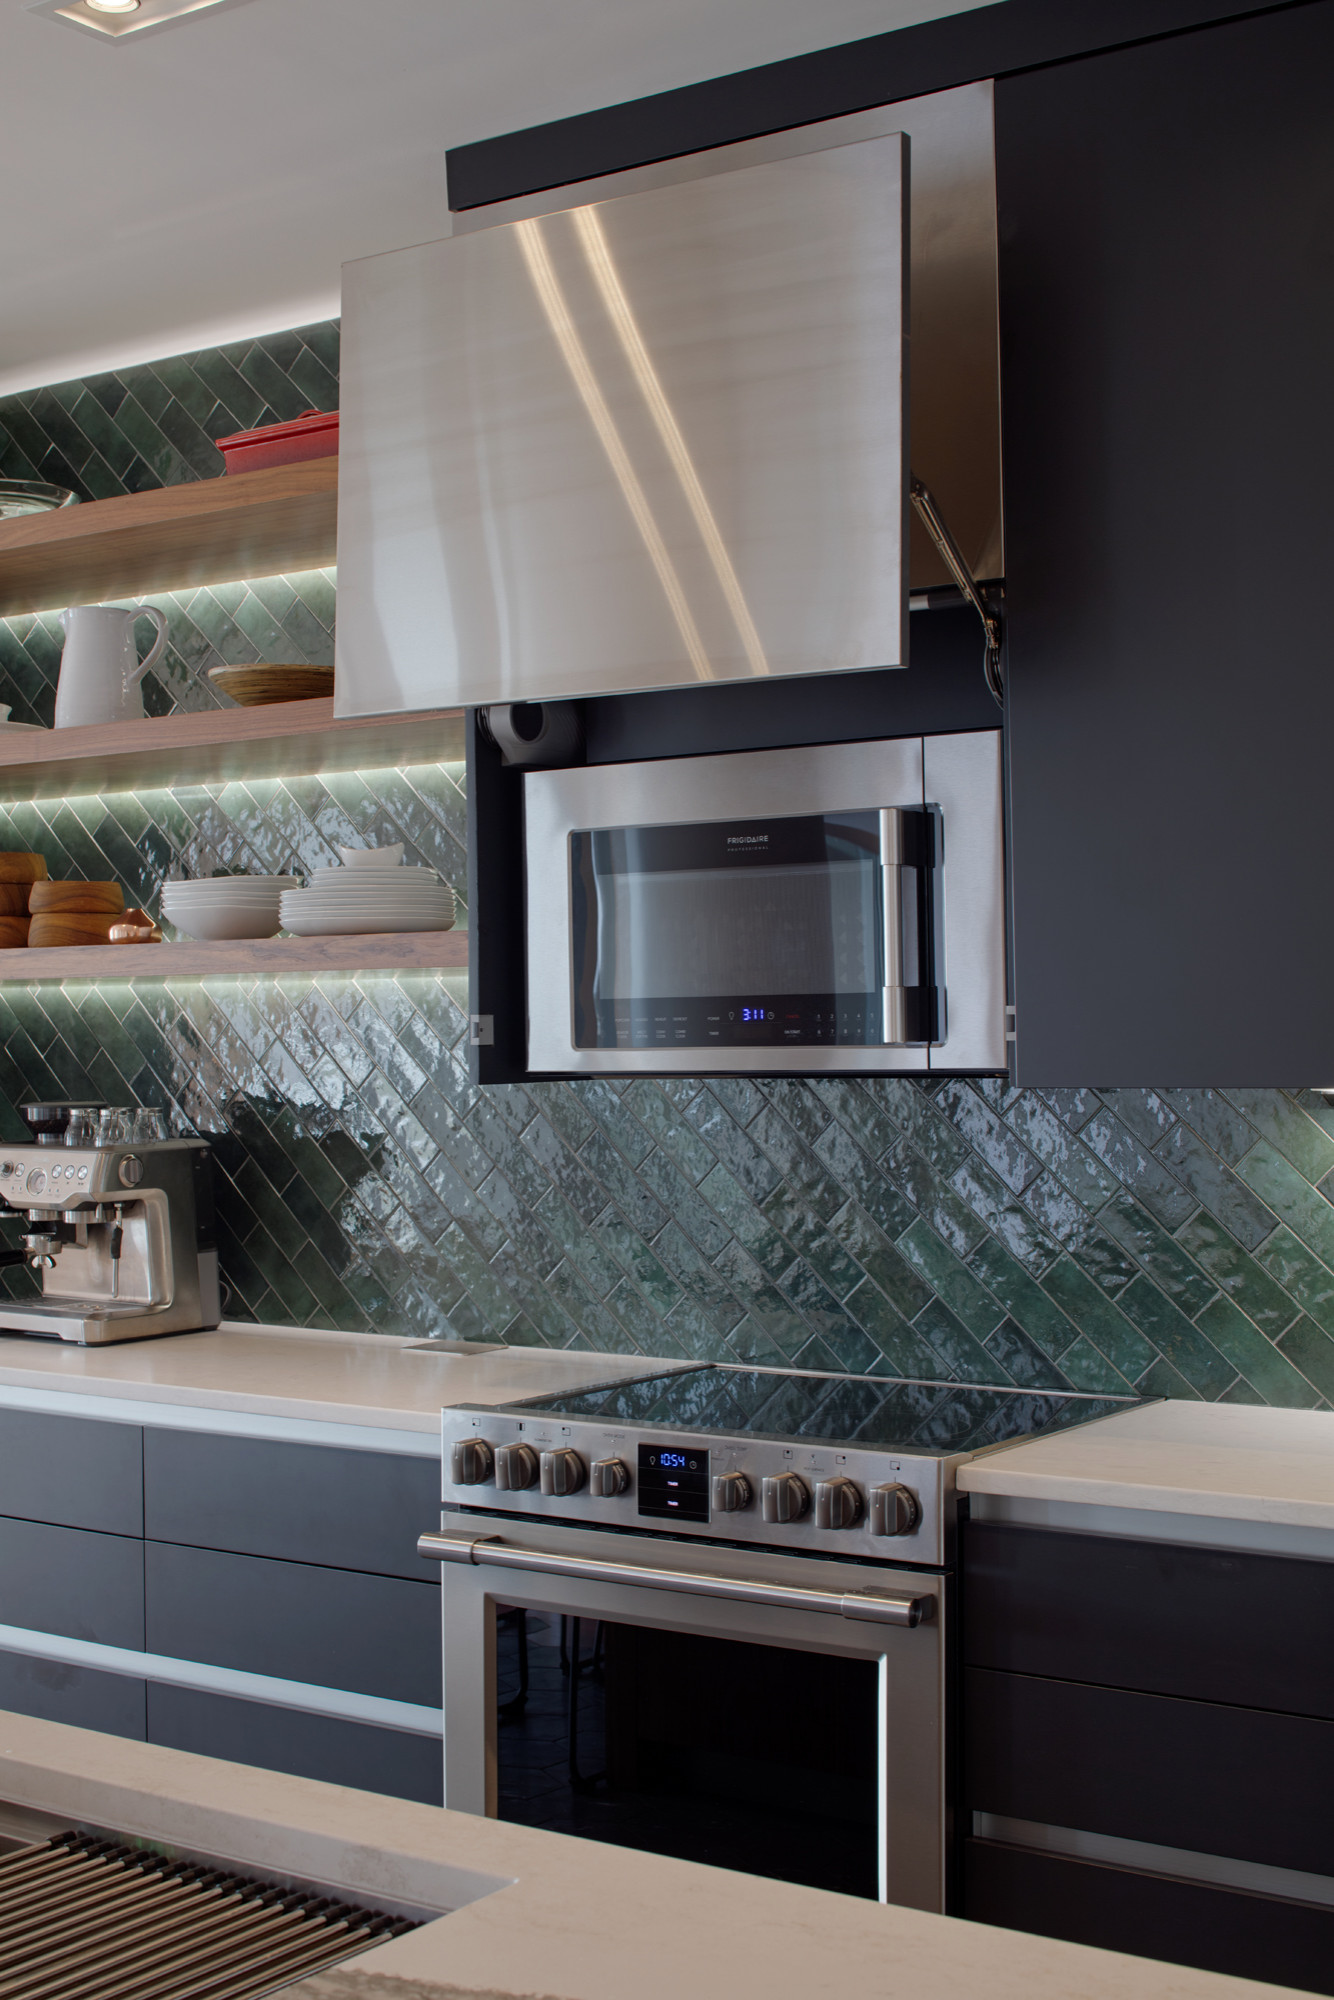 Concealed microwave hood with automatic door opener